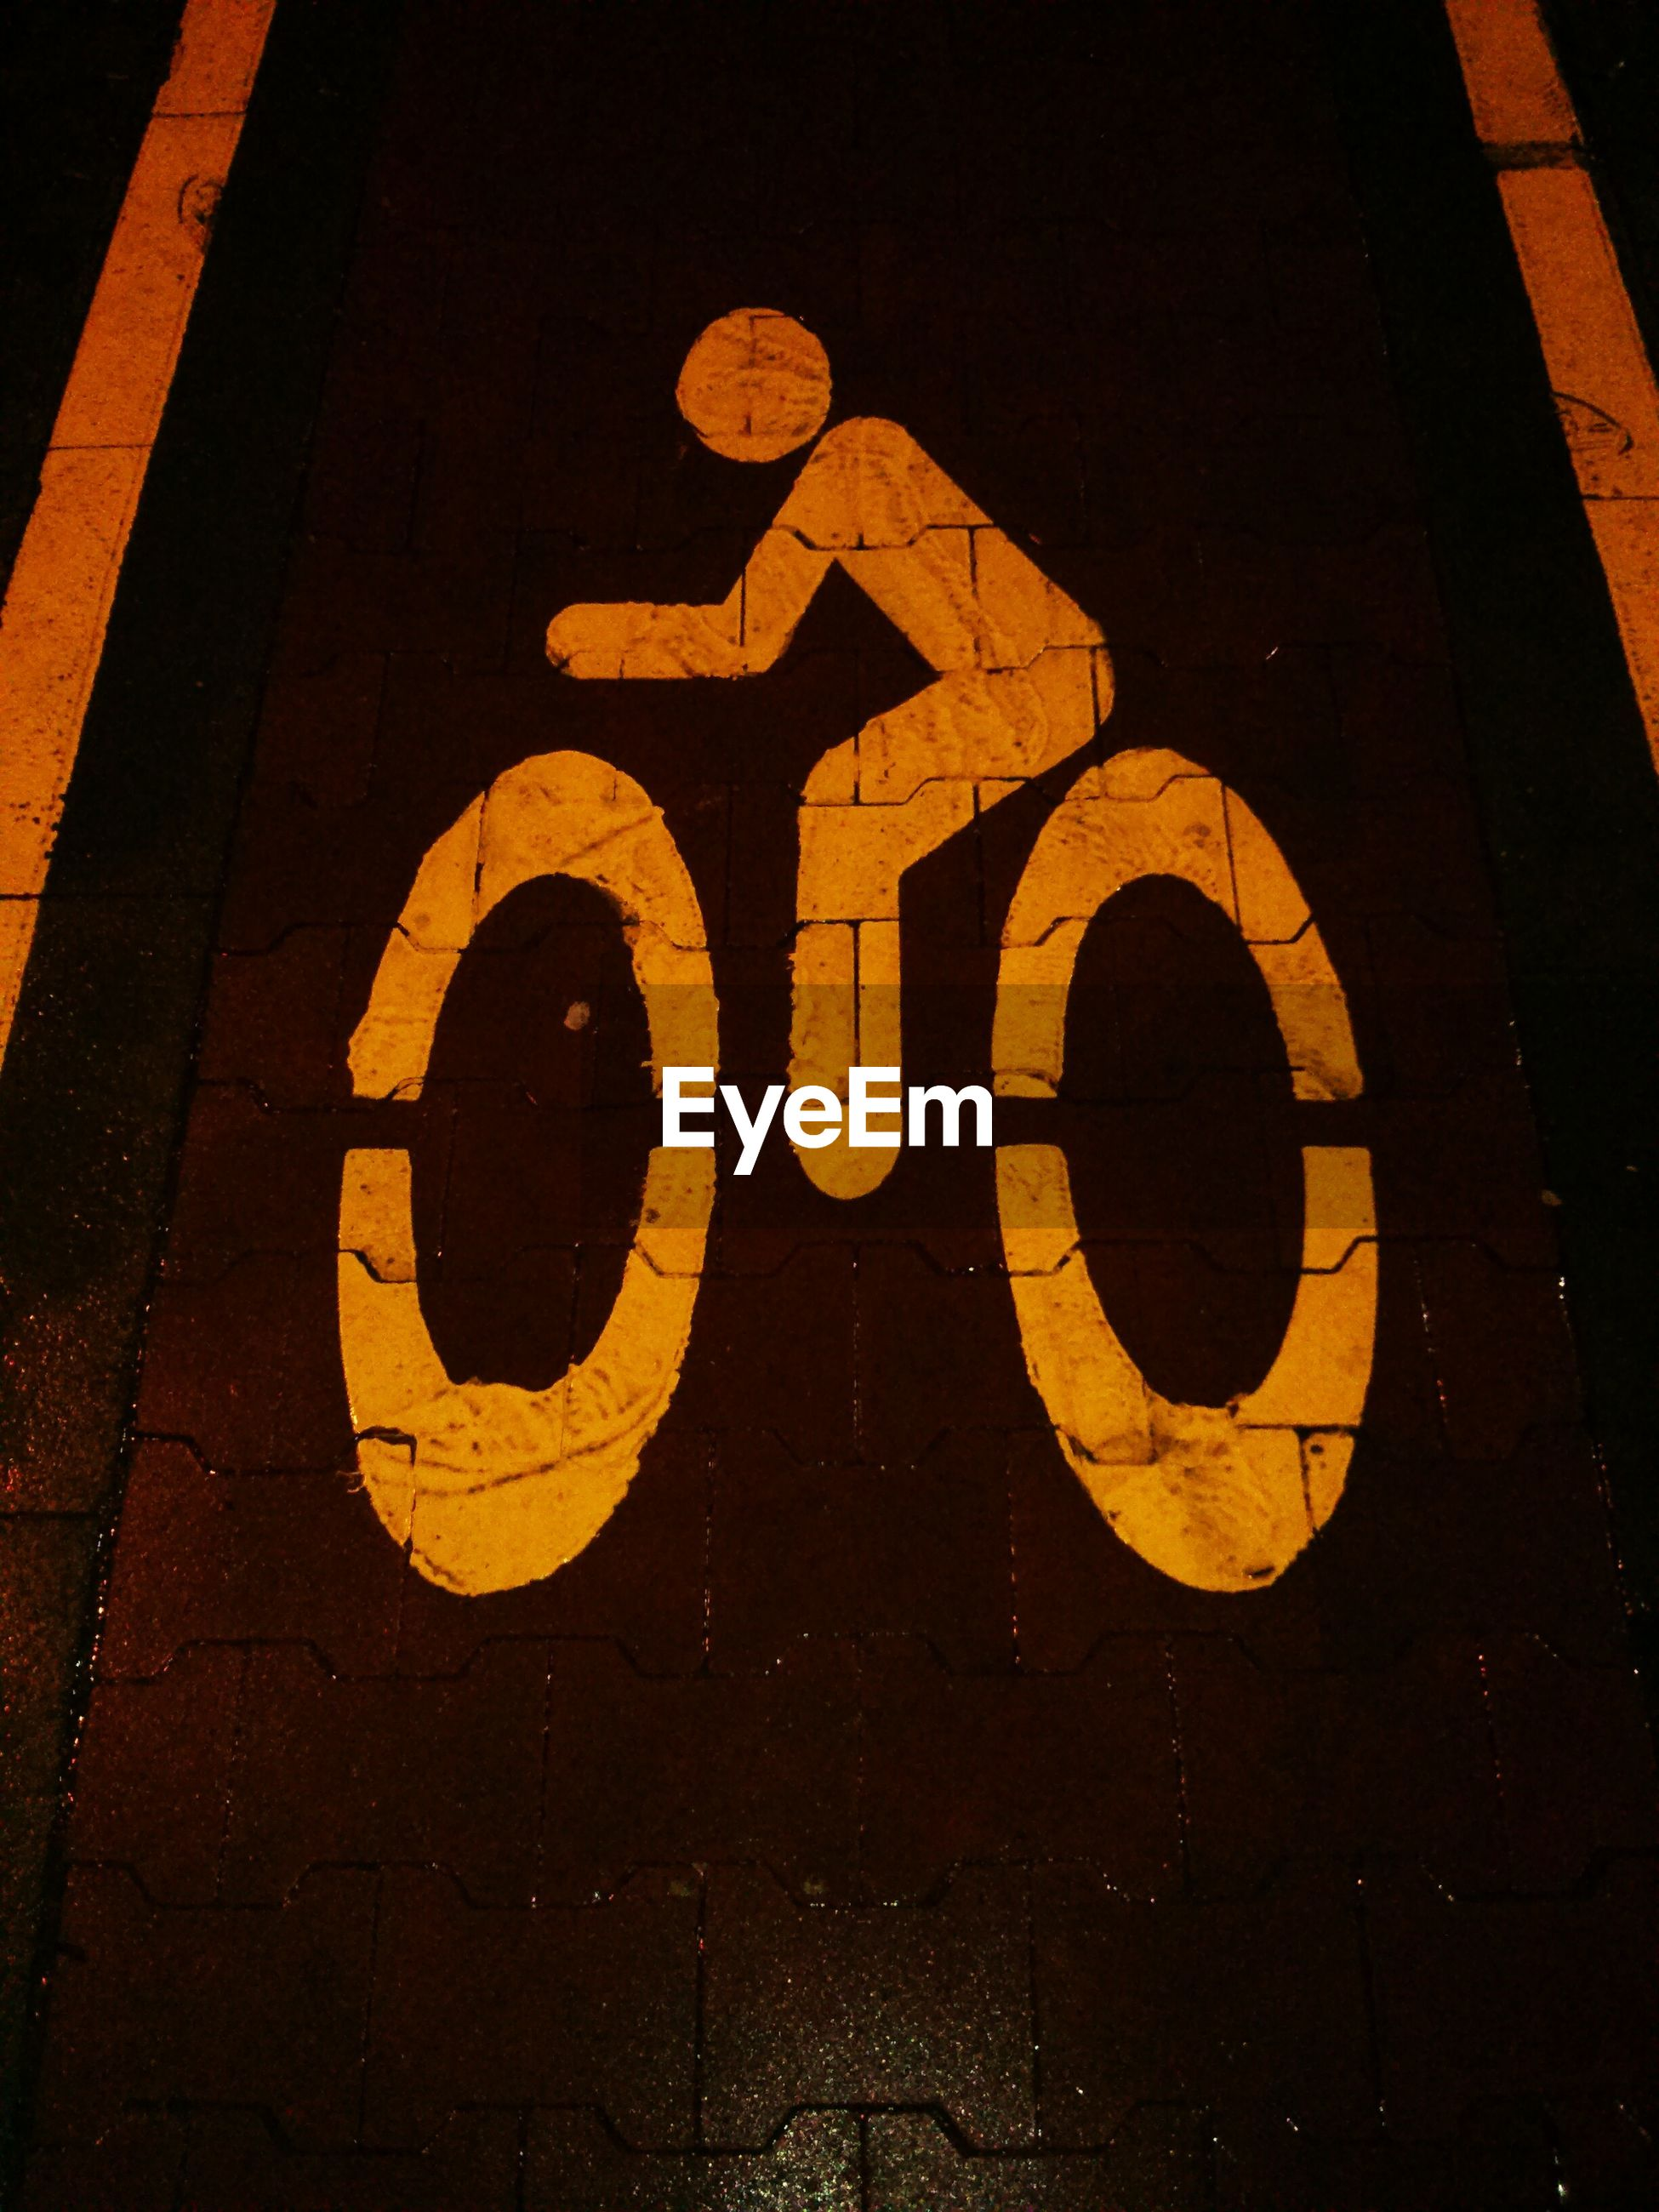 High angle view of bicycle lane sign on street at night